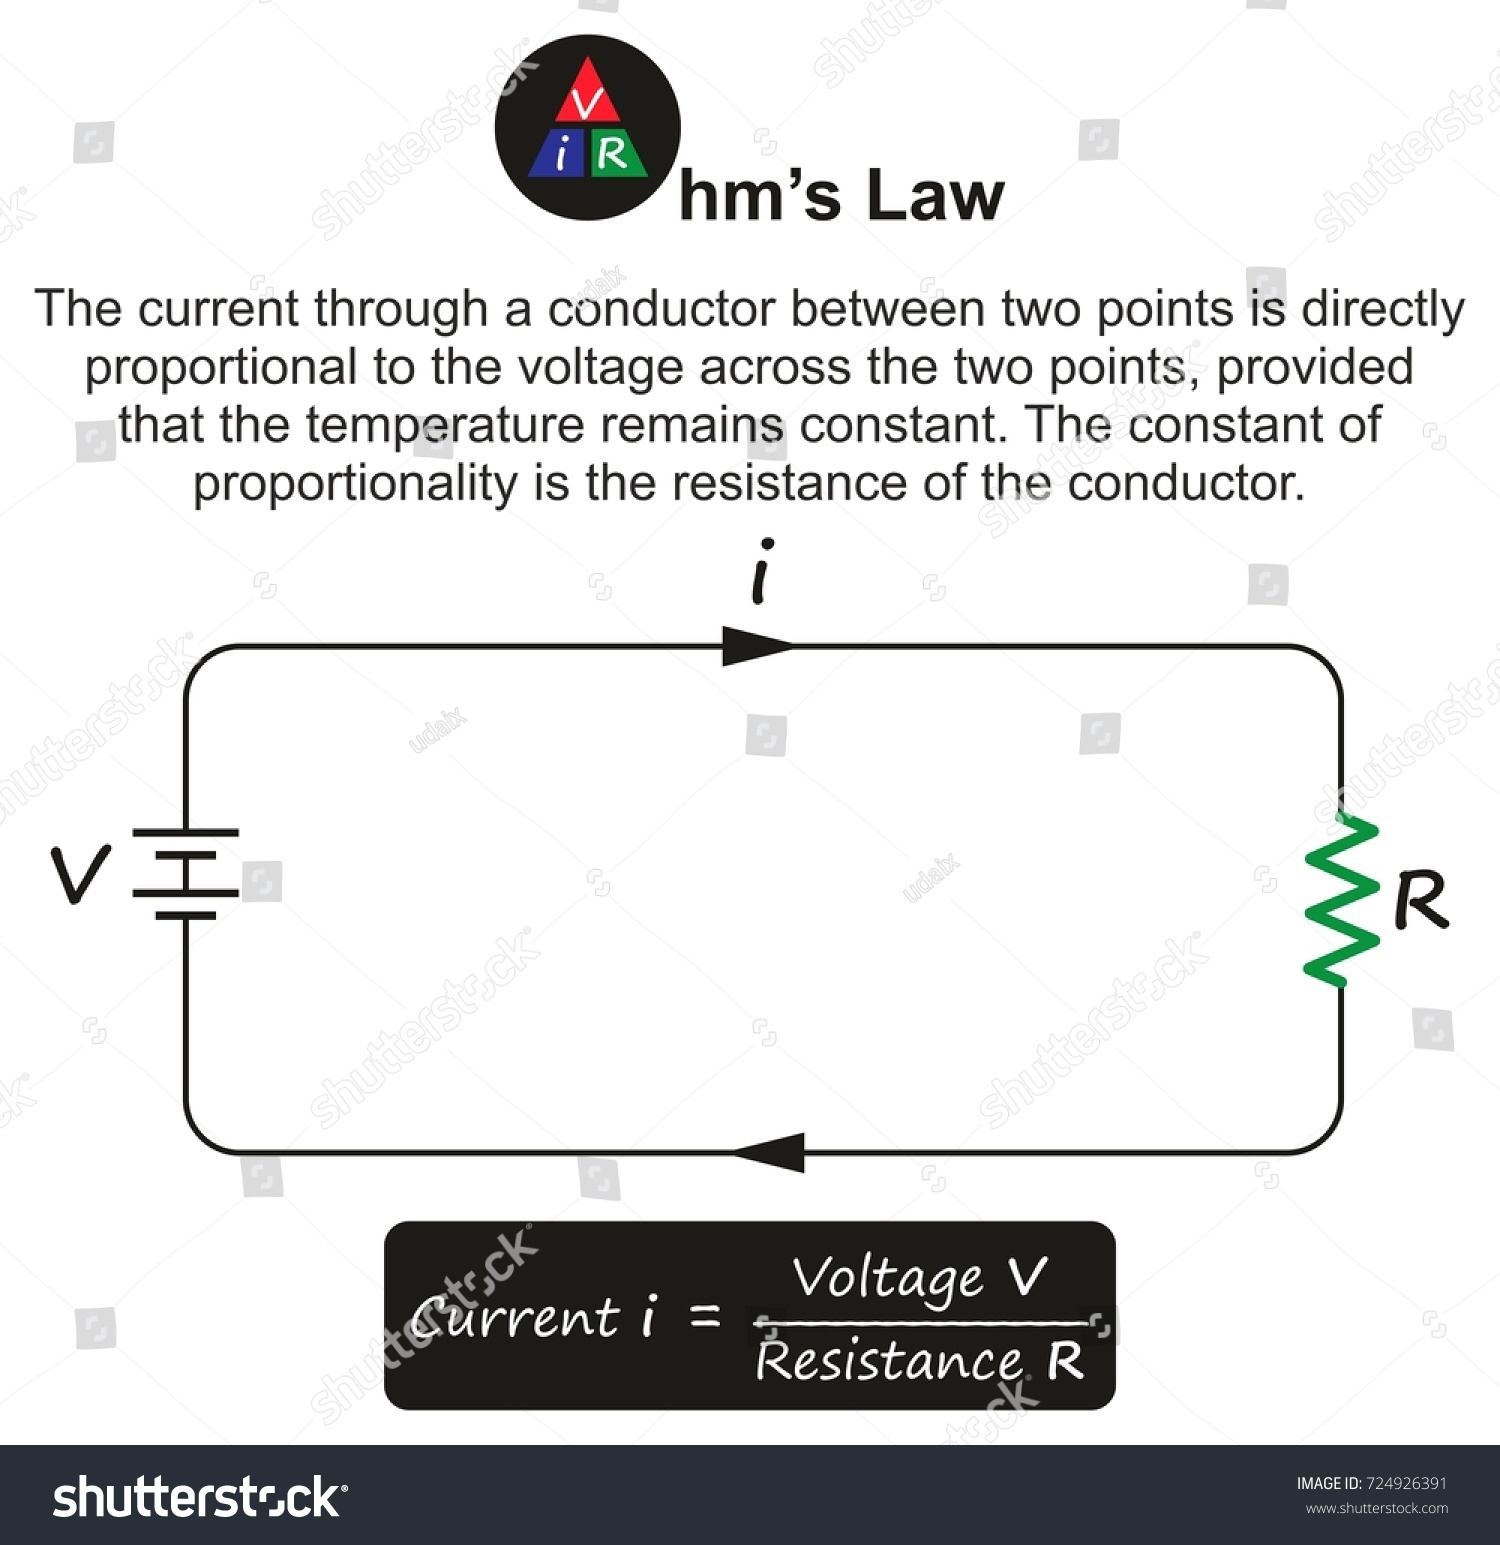 Law Infographic Diagram Showing Simple Electric Stock Vector Circuit A Ohms Including Current Voltage Resistance And Relation Between